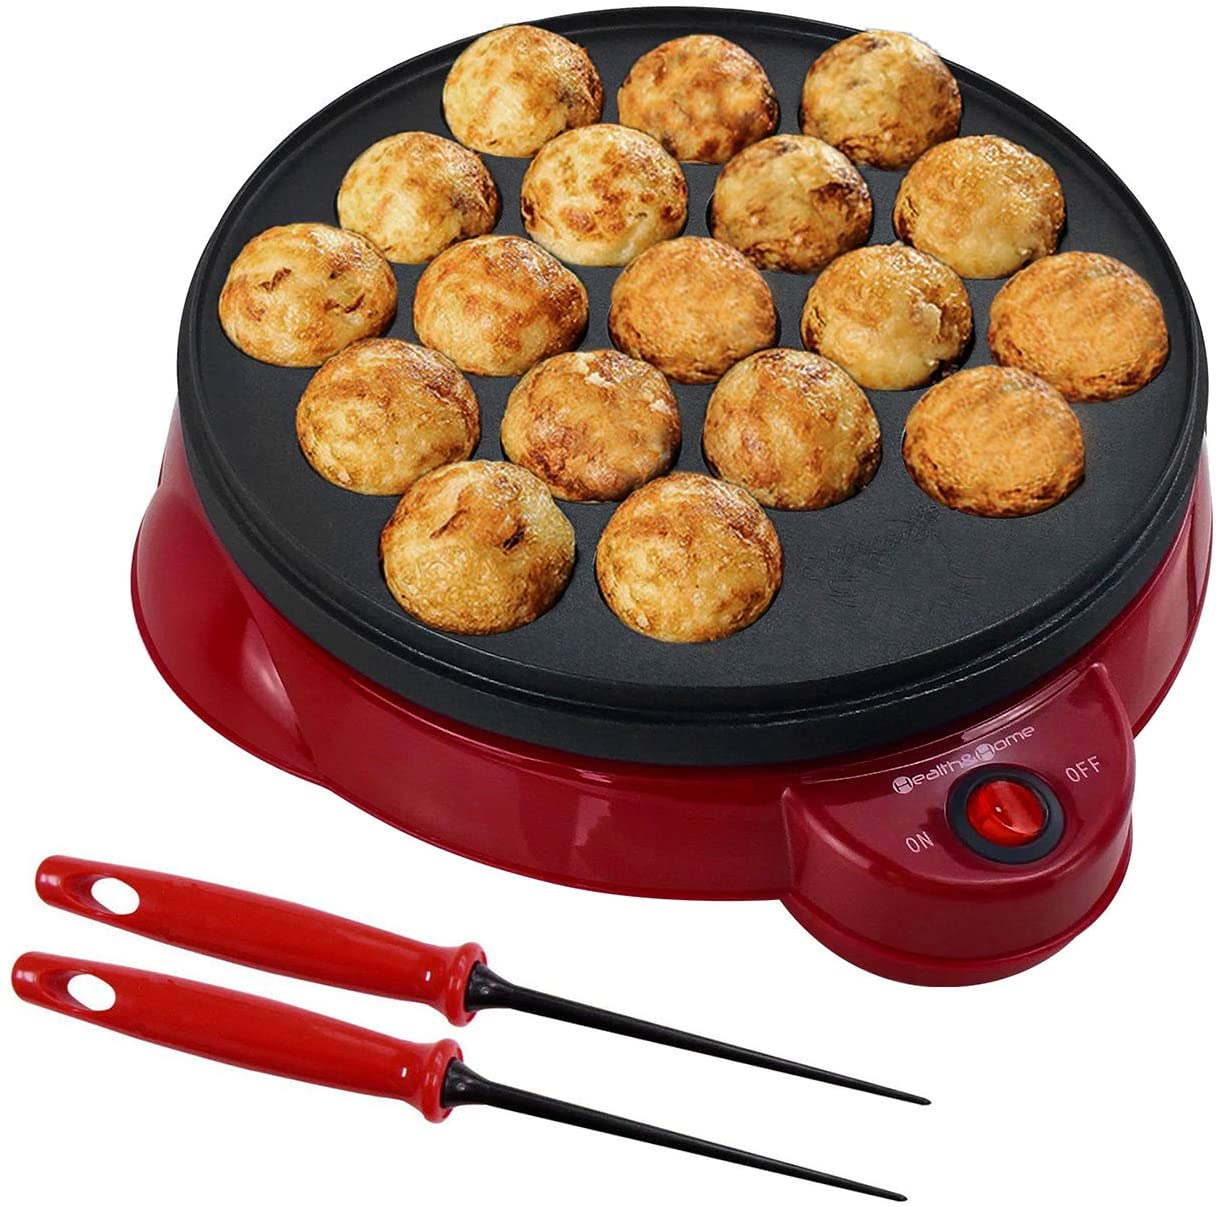 Health and Home Electric Takoyaki Maker With Free Takoyaki Tools - Specialty & Novelty Cake Pans for Takoyaki Octopus Ball, Cake Pop, Ebelskiver, Aebleskiver - Electric Takoyaki Grill - Portable, Compact, Easy Clean